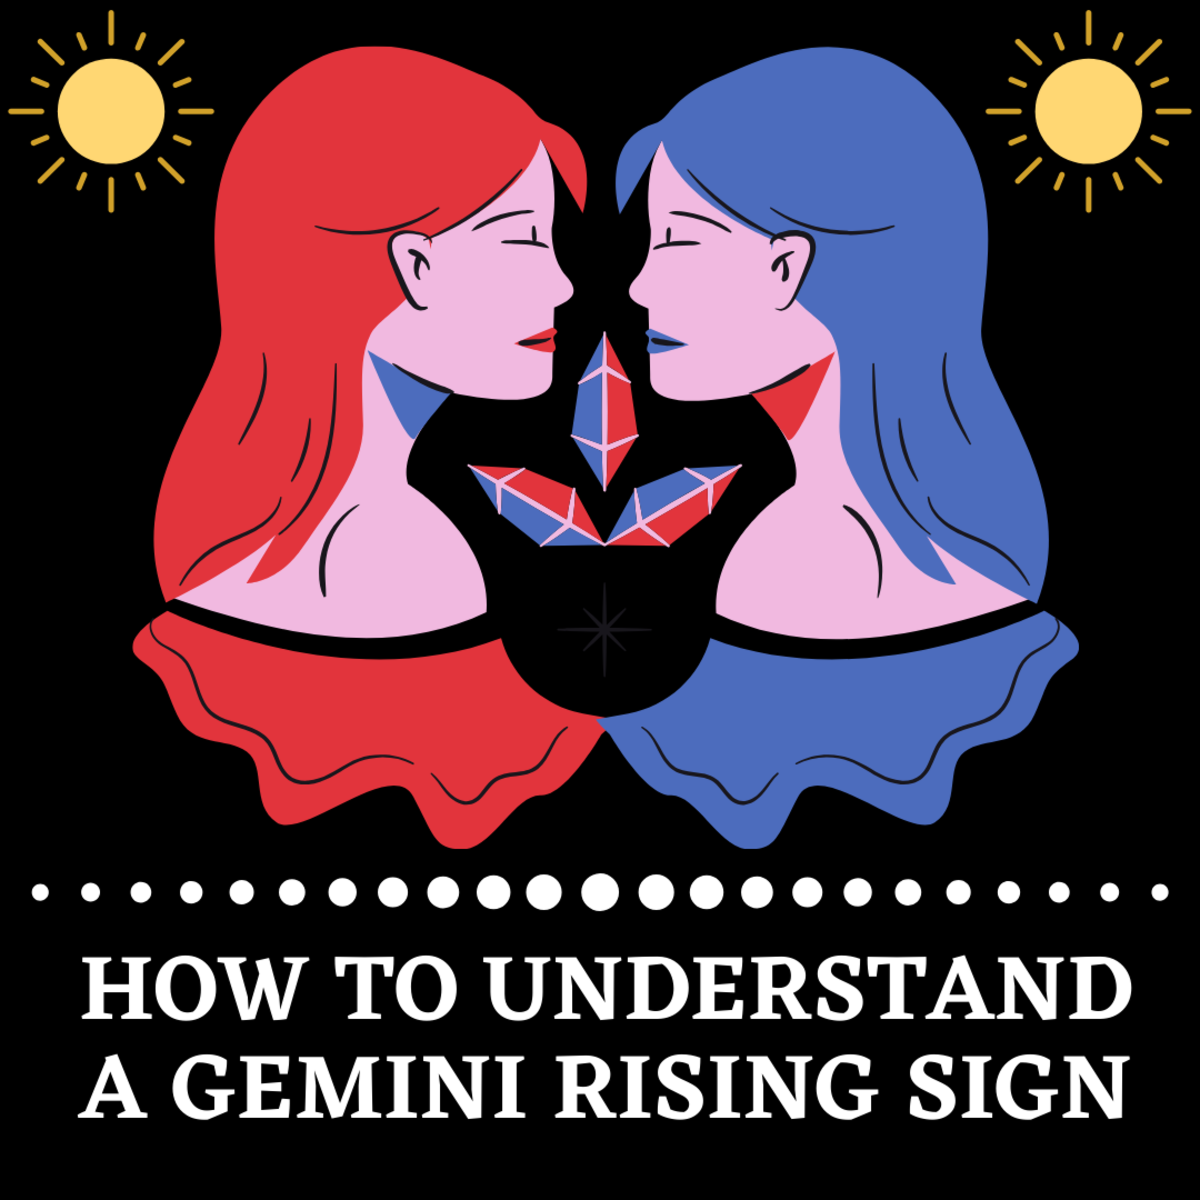 How to Understand a Gemini Rising Sign